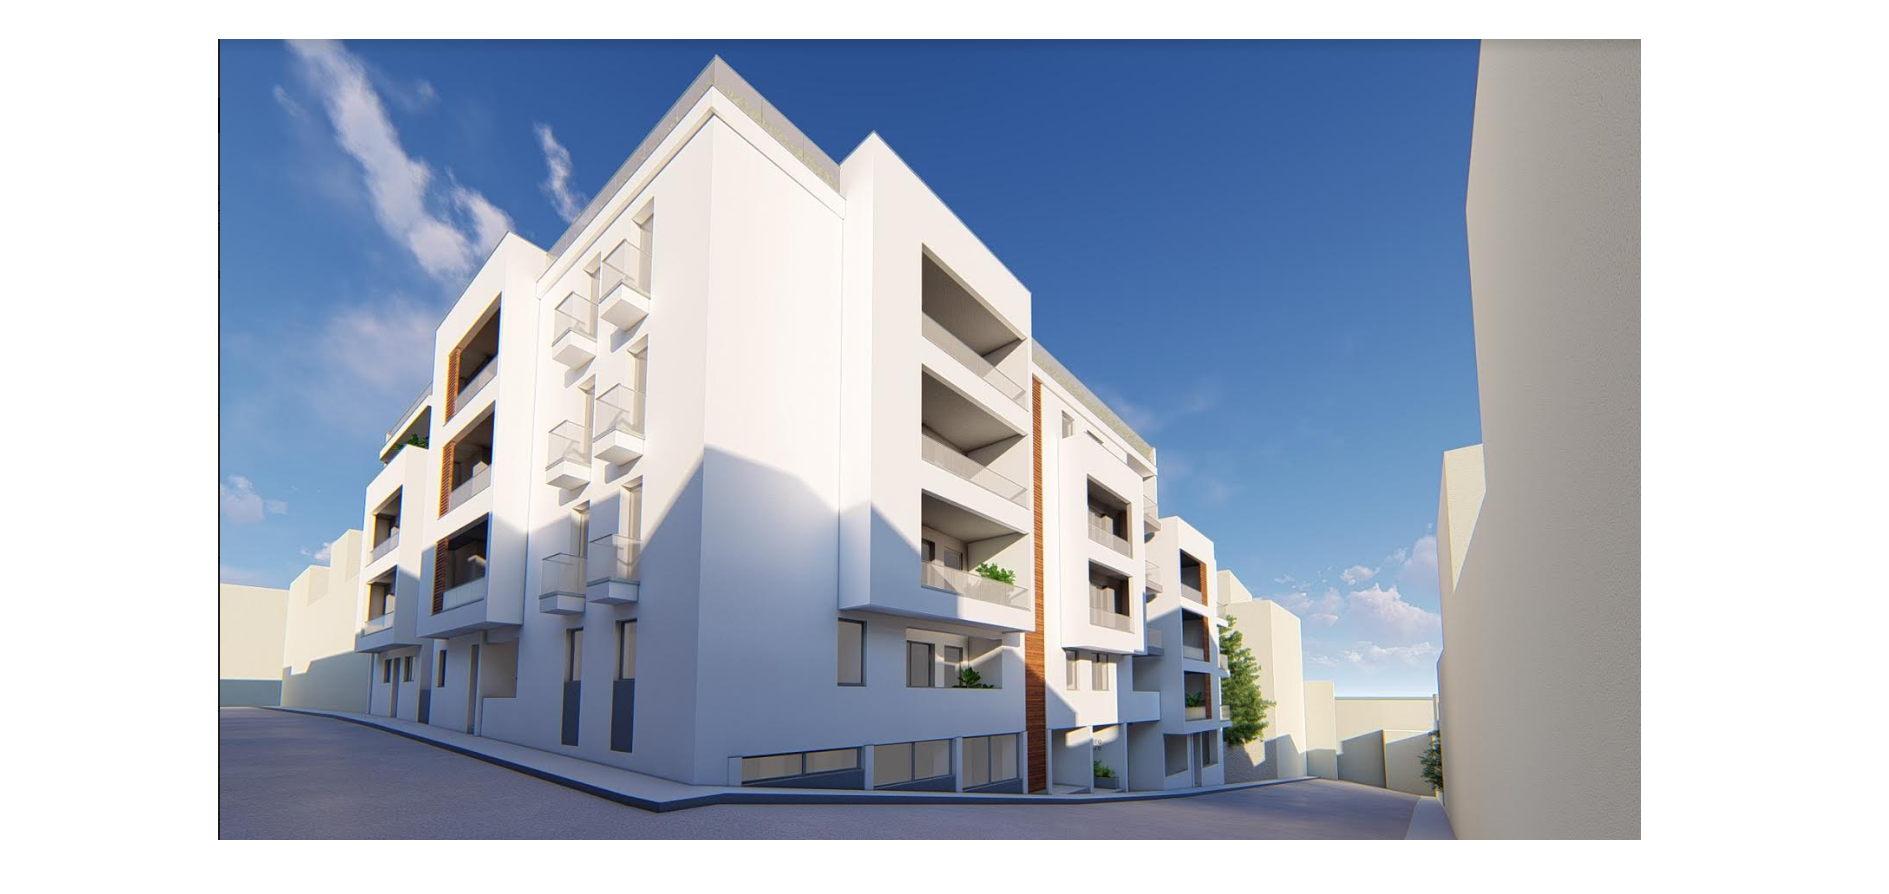 Property malta: New block